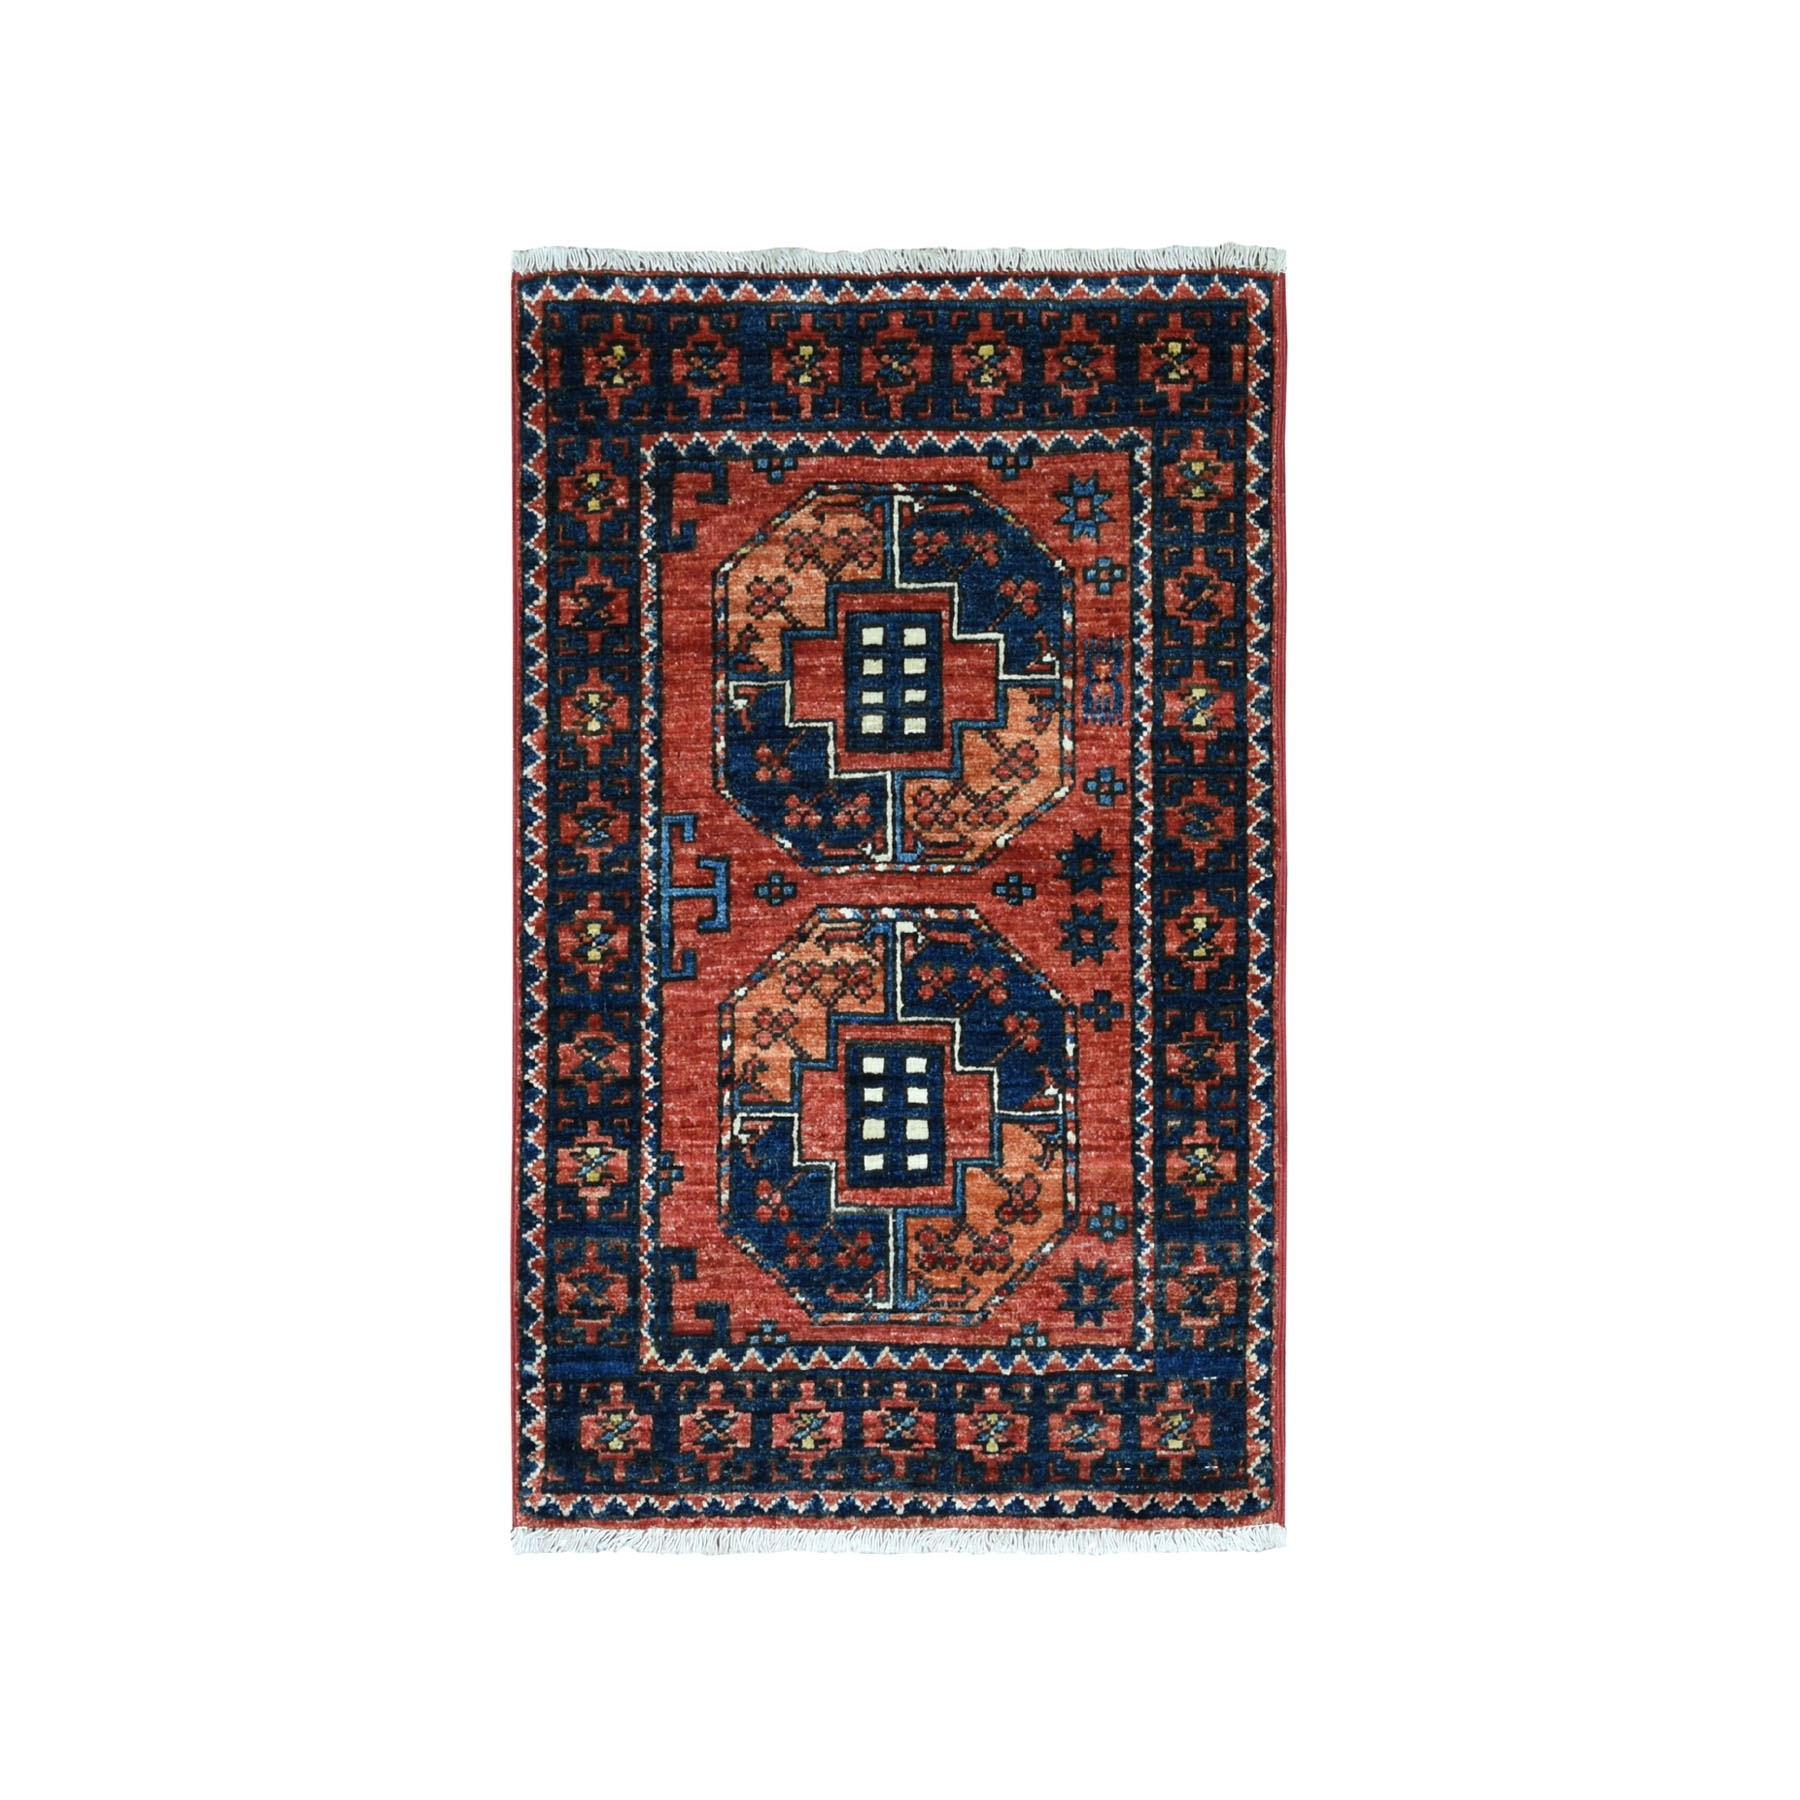 2'X3' Afghan Ersari Elephant Feet Design Pure Wool Hand-Knotted Oriental Rug moaeacc9